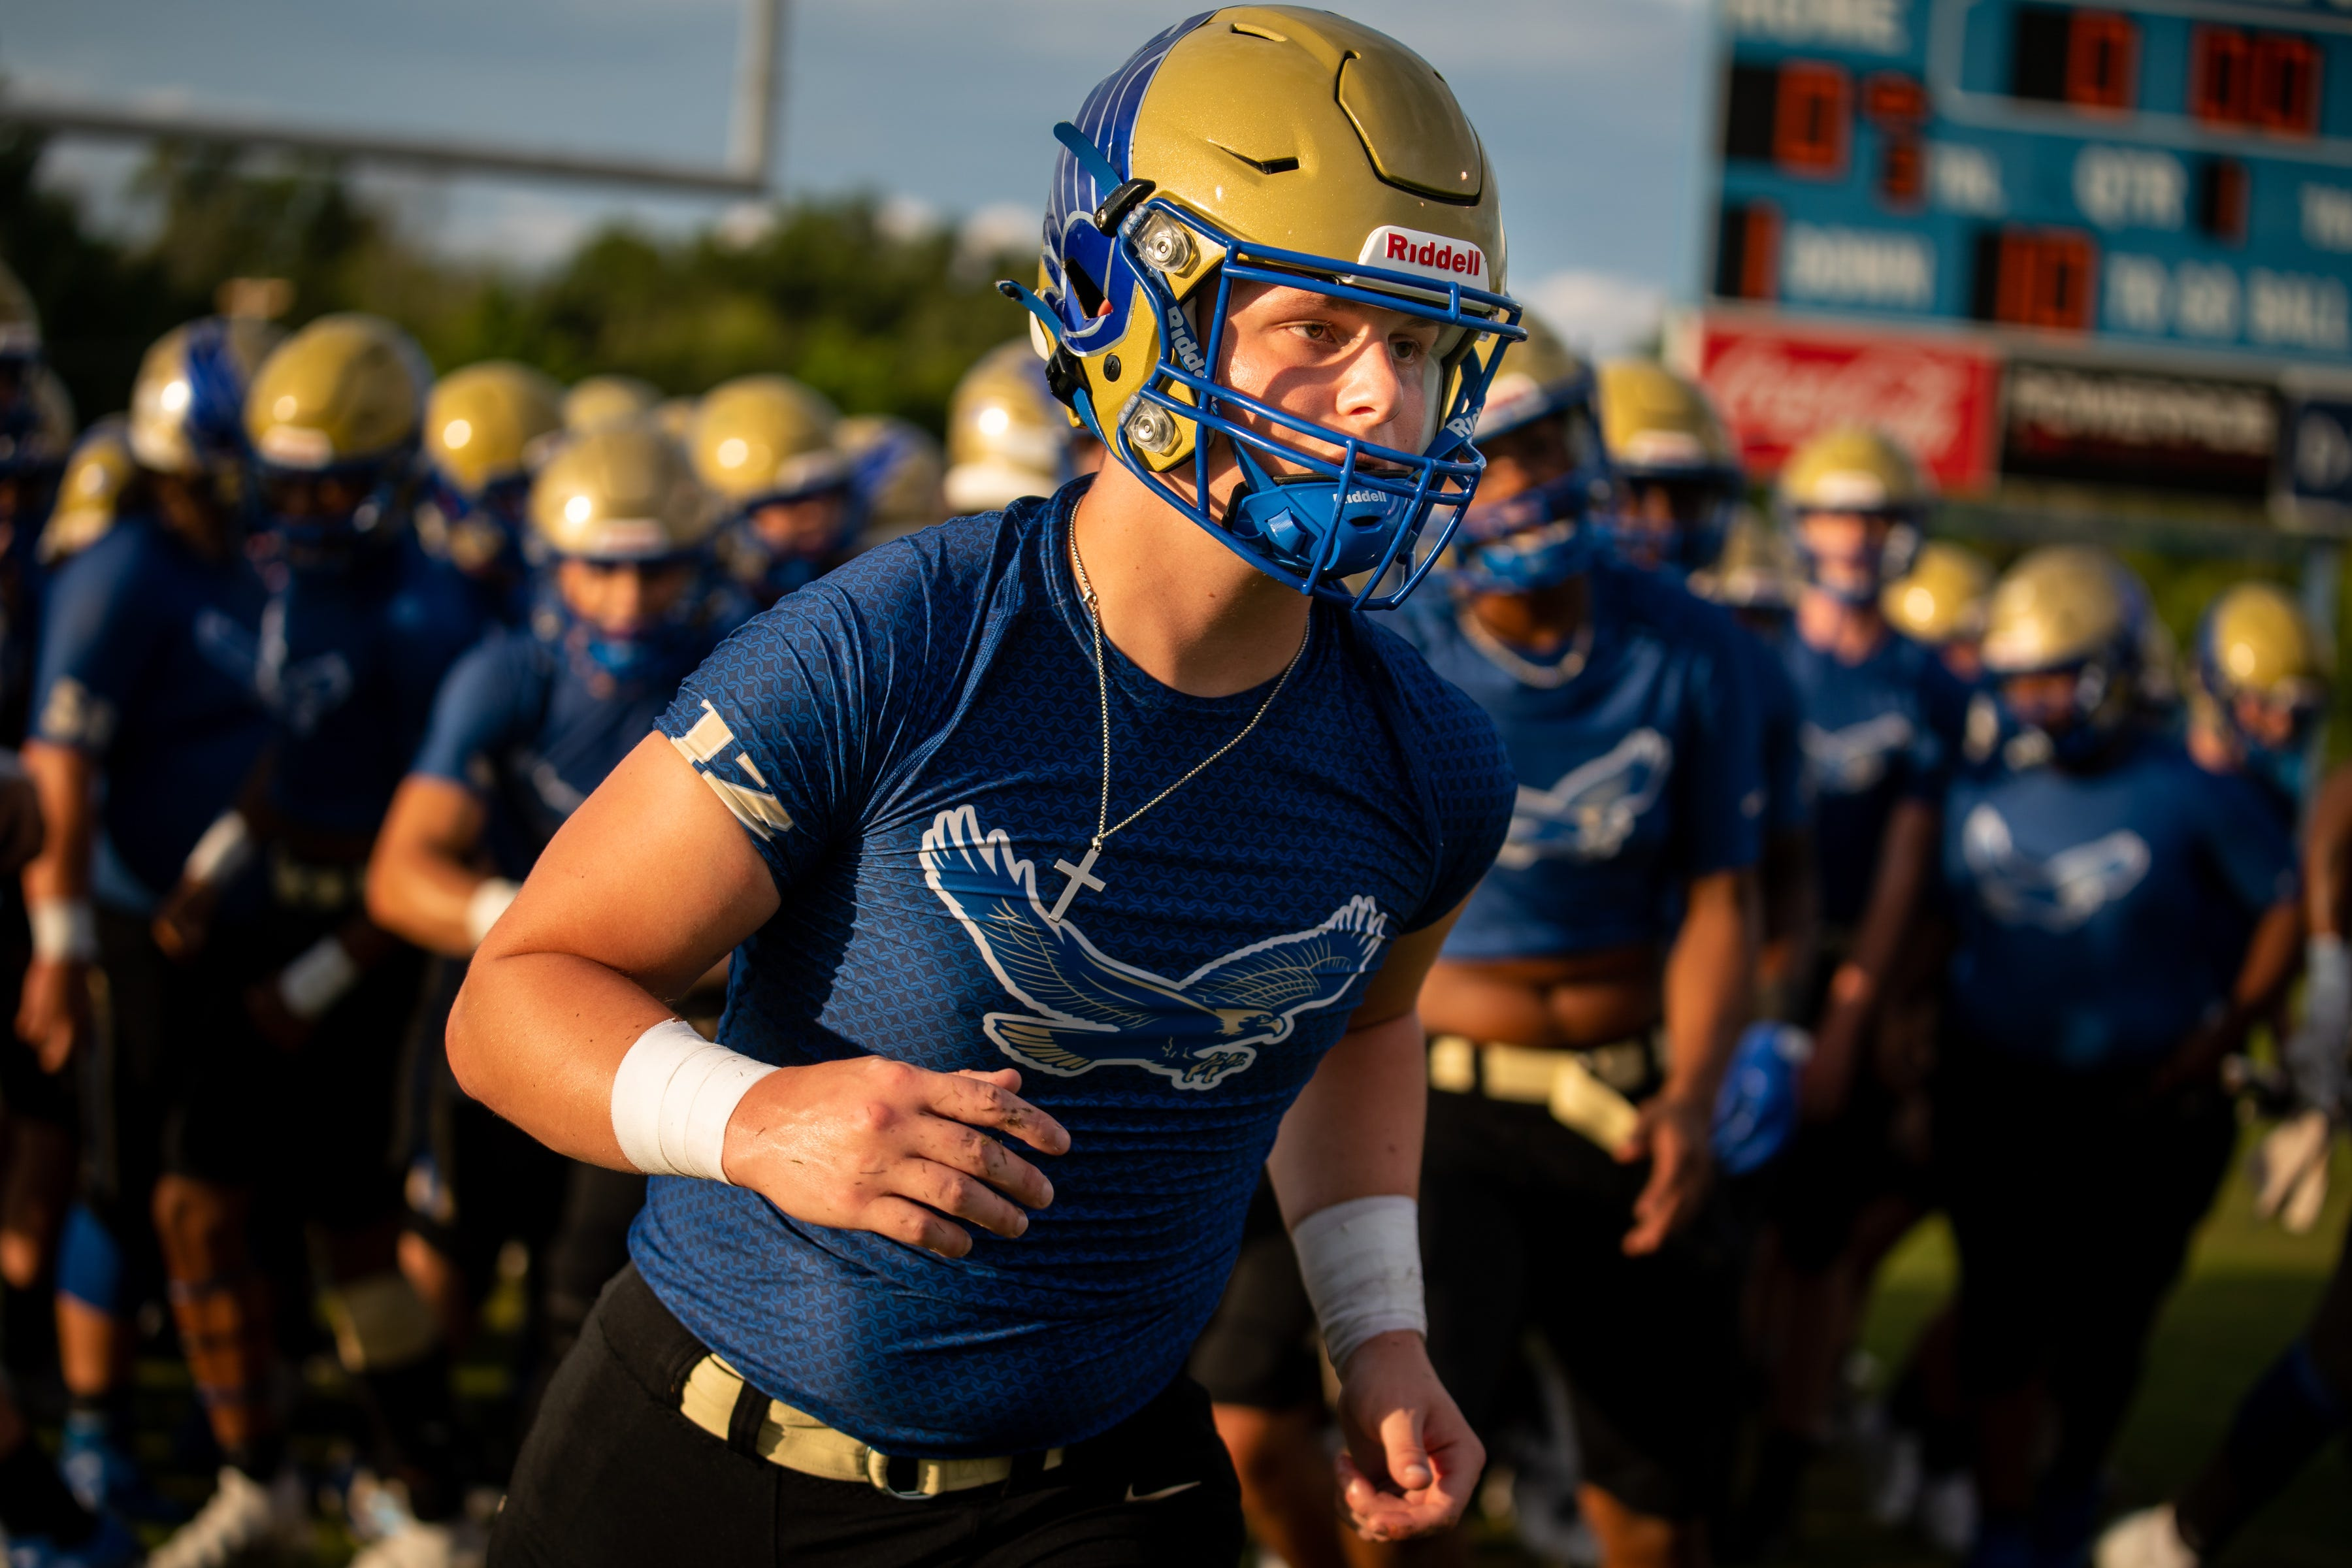 Shelbyville Central's Cayden Puckett (12) warms up before a game against Tullahoma at Shelbyville Central High School in Shelbyville, Tenn., Thursday, Aug. 19, 2021. Puckett returned to the field for the first time on Thursday, eight months after being diagnosed with COVID-19, and about seven months after learning he had myocarditis.